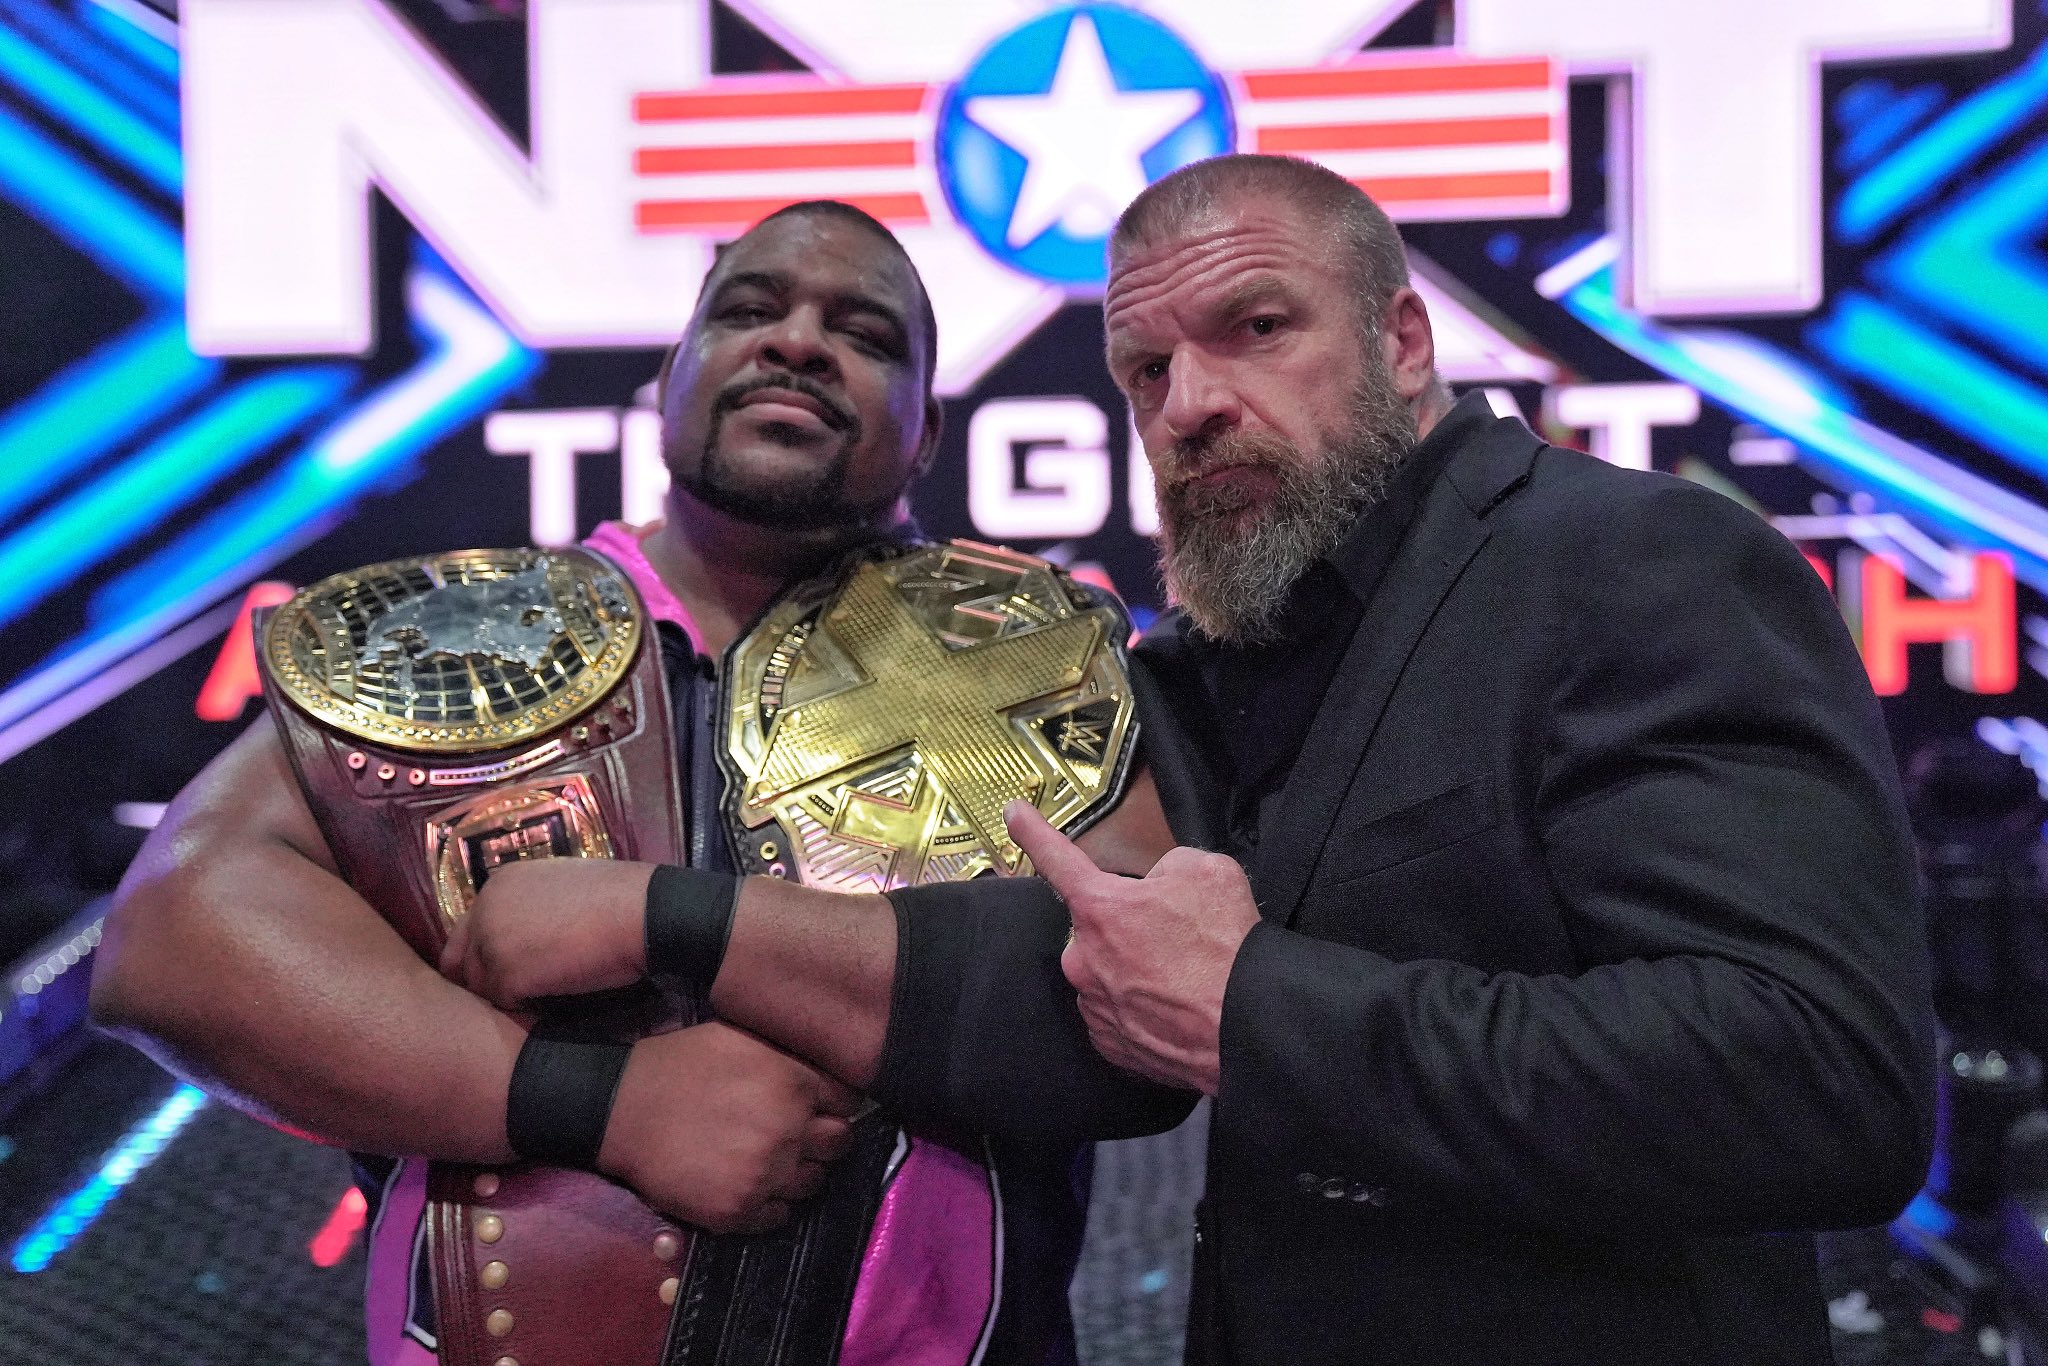 Keepin' It Kayfabe: Is being a double champion worth the hassle?